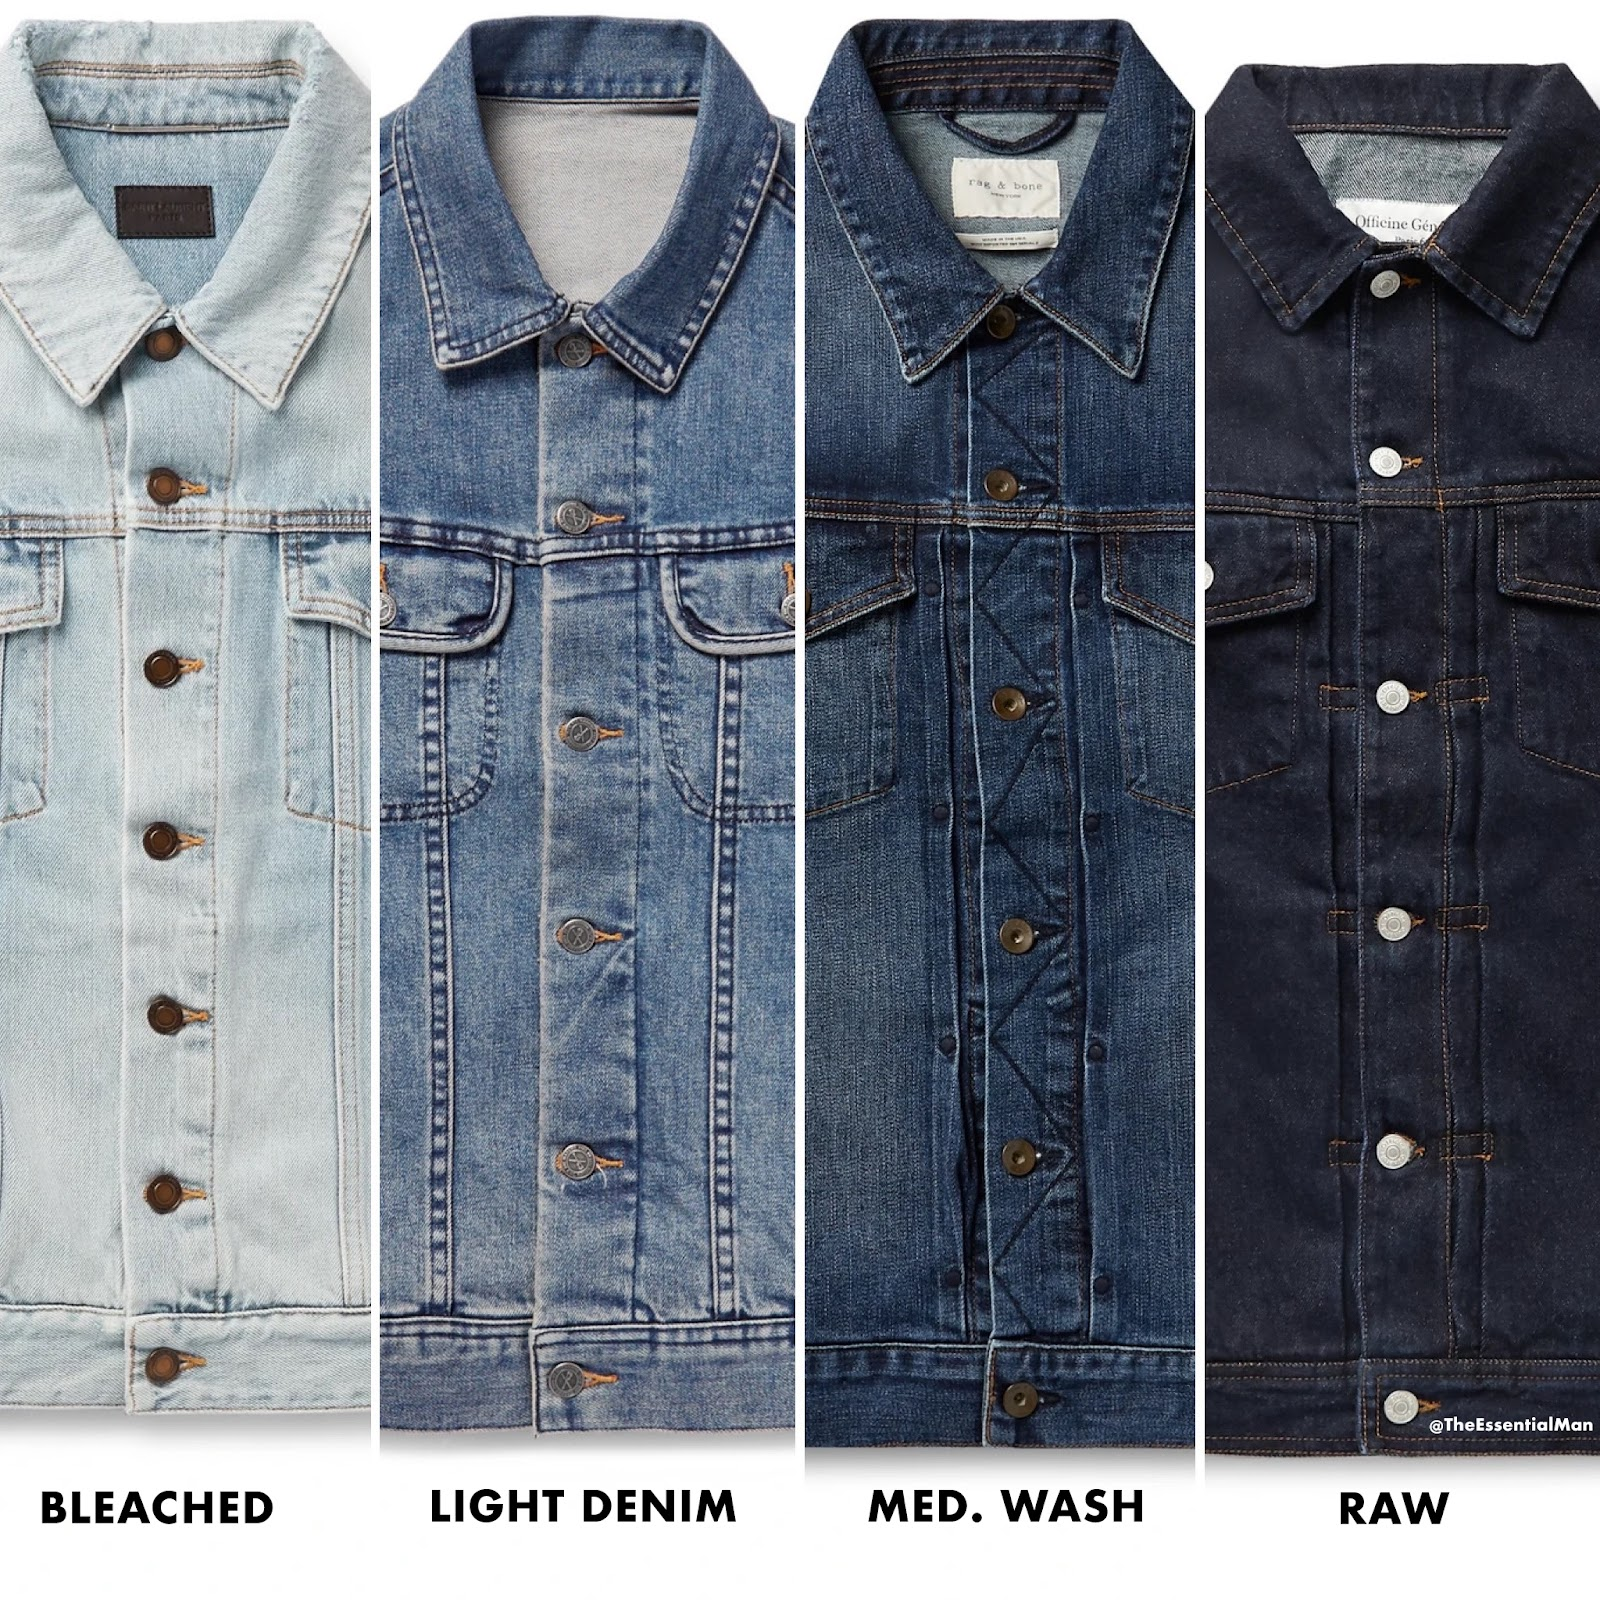 Different color washes of denim jackets